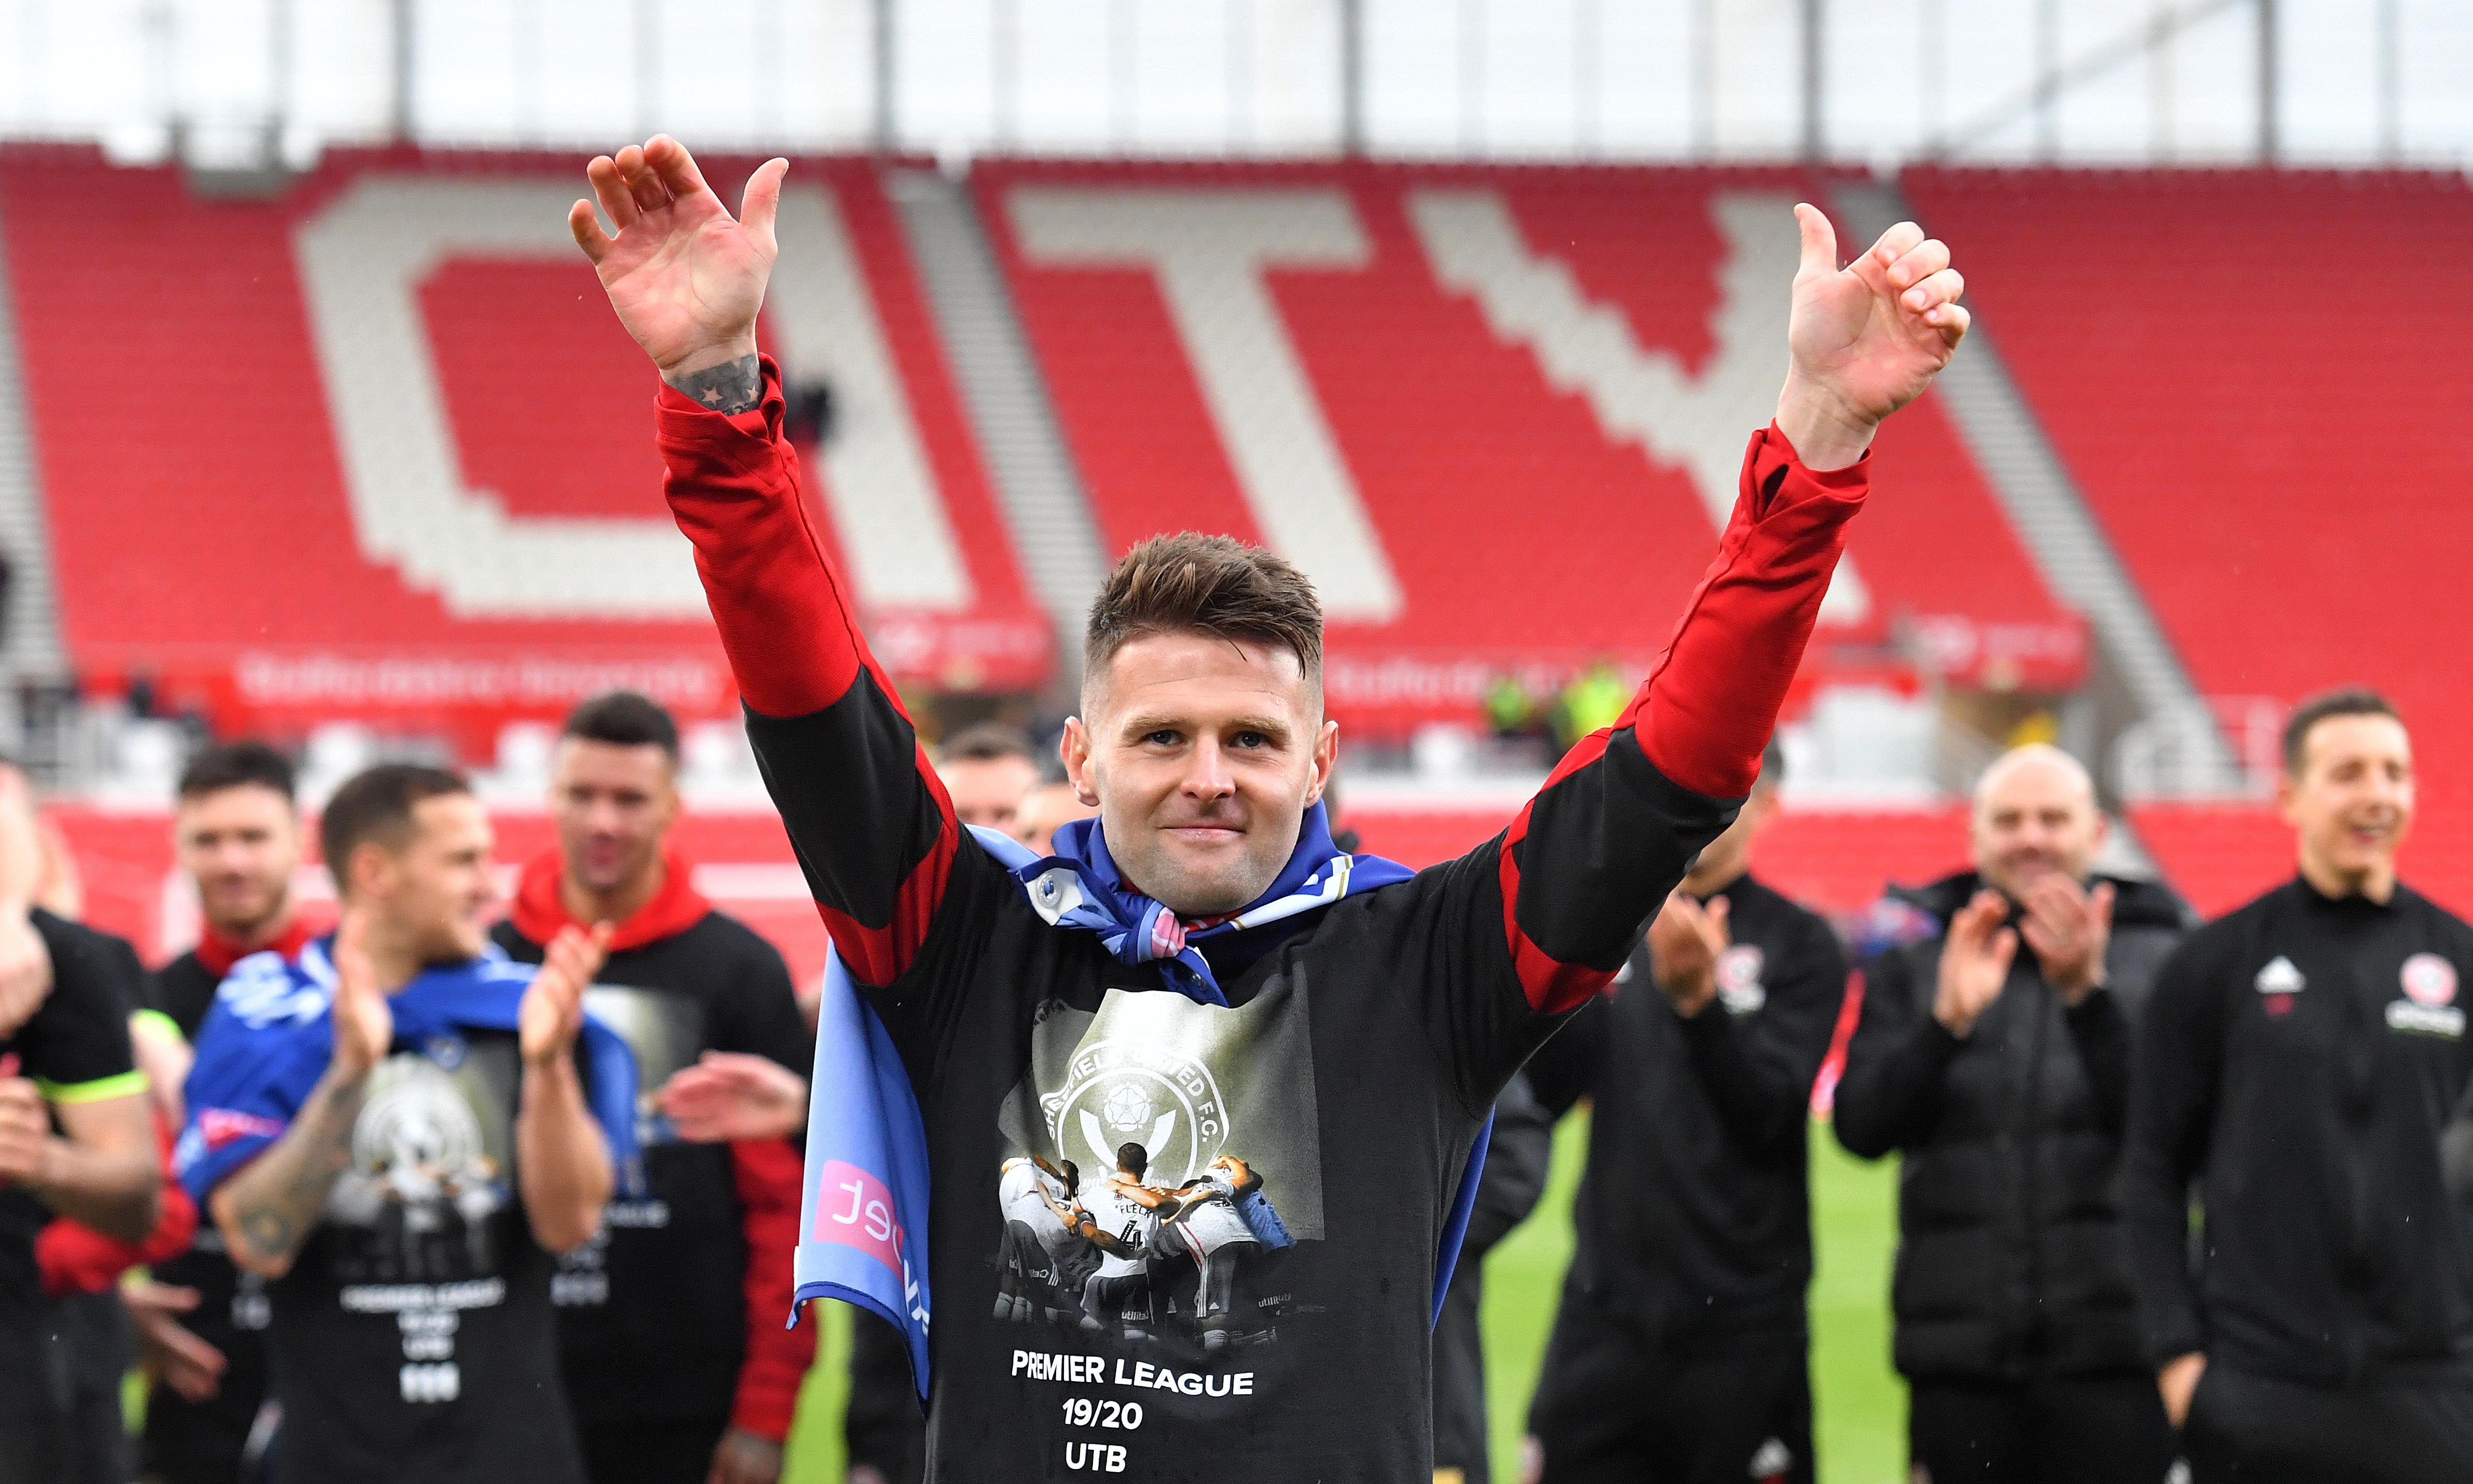 Sheffield United's Ollie Norwood: 'Fergie told me I'd get here … I don't know if he meant it'